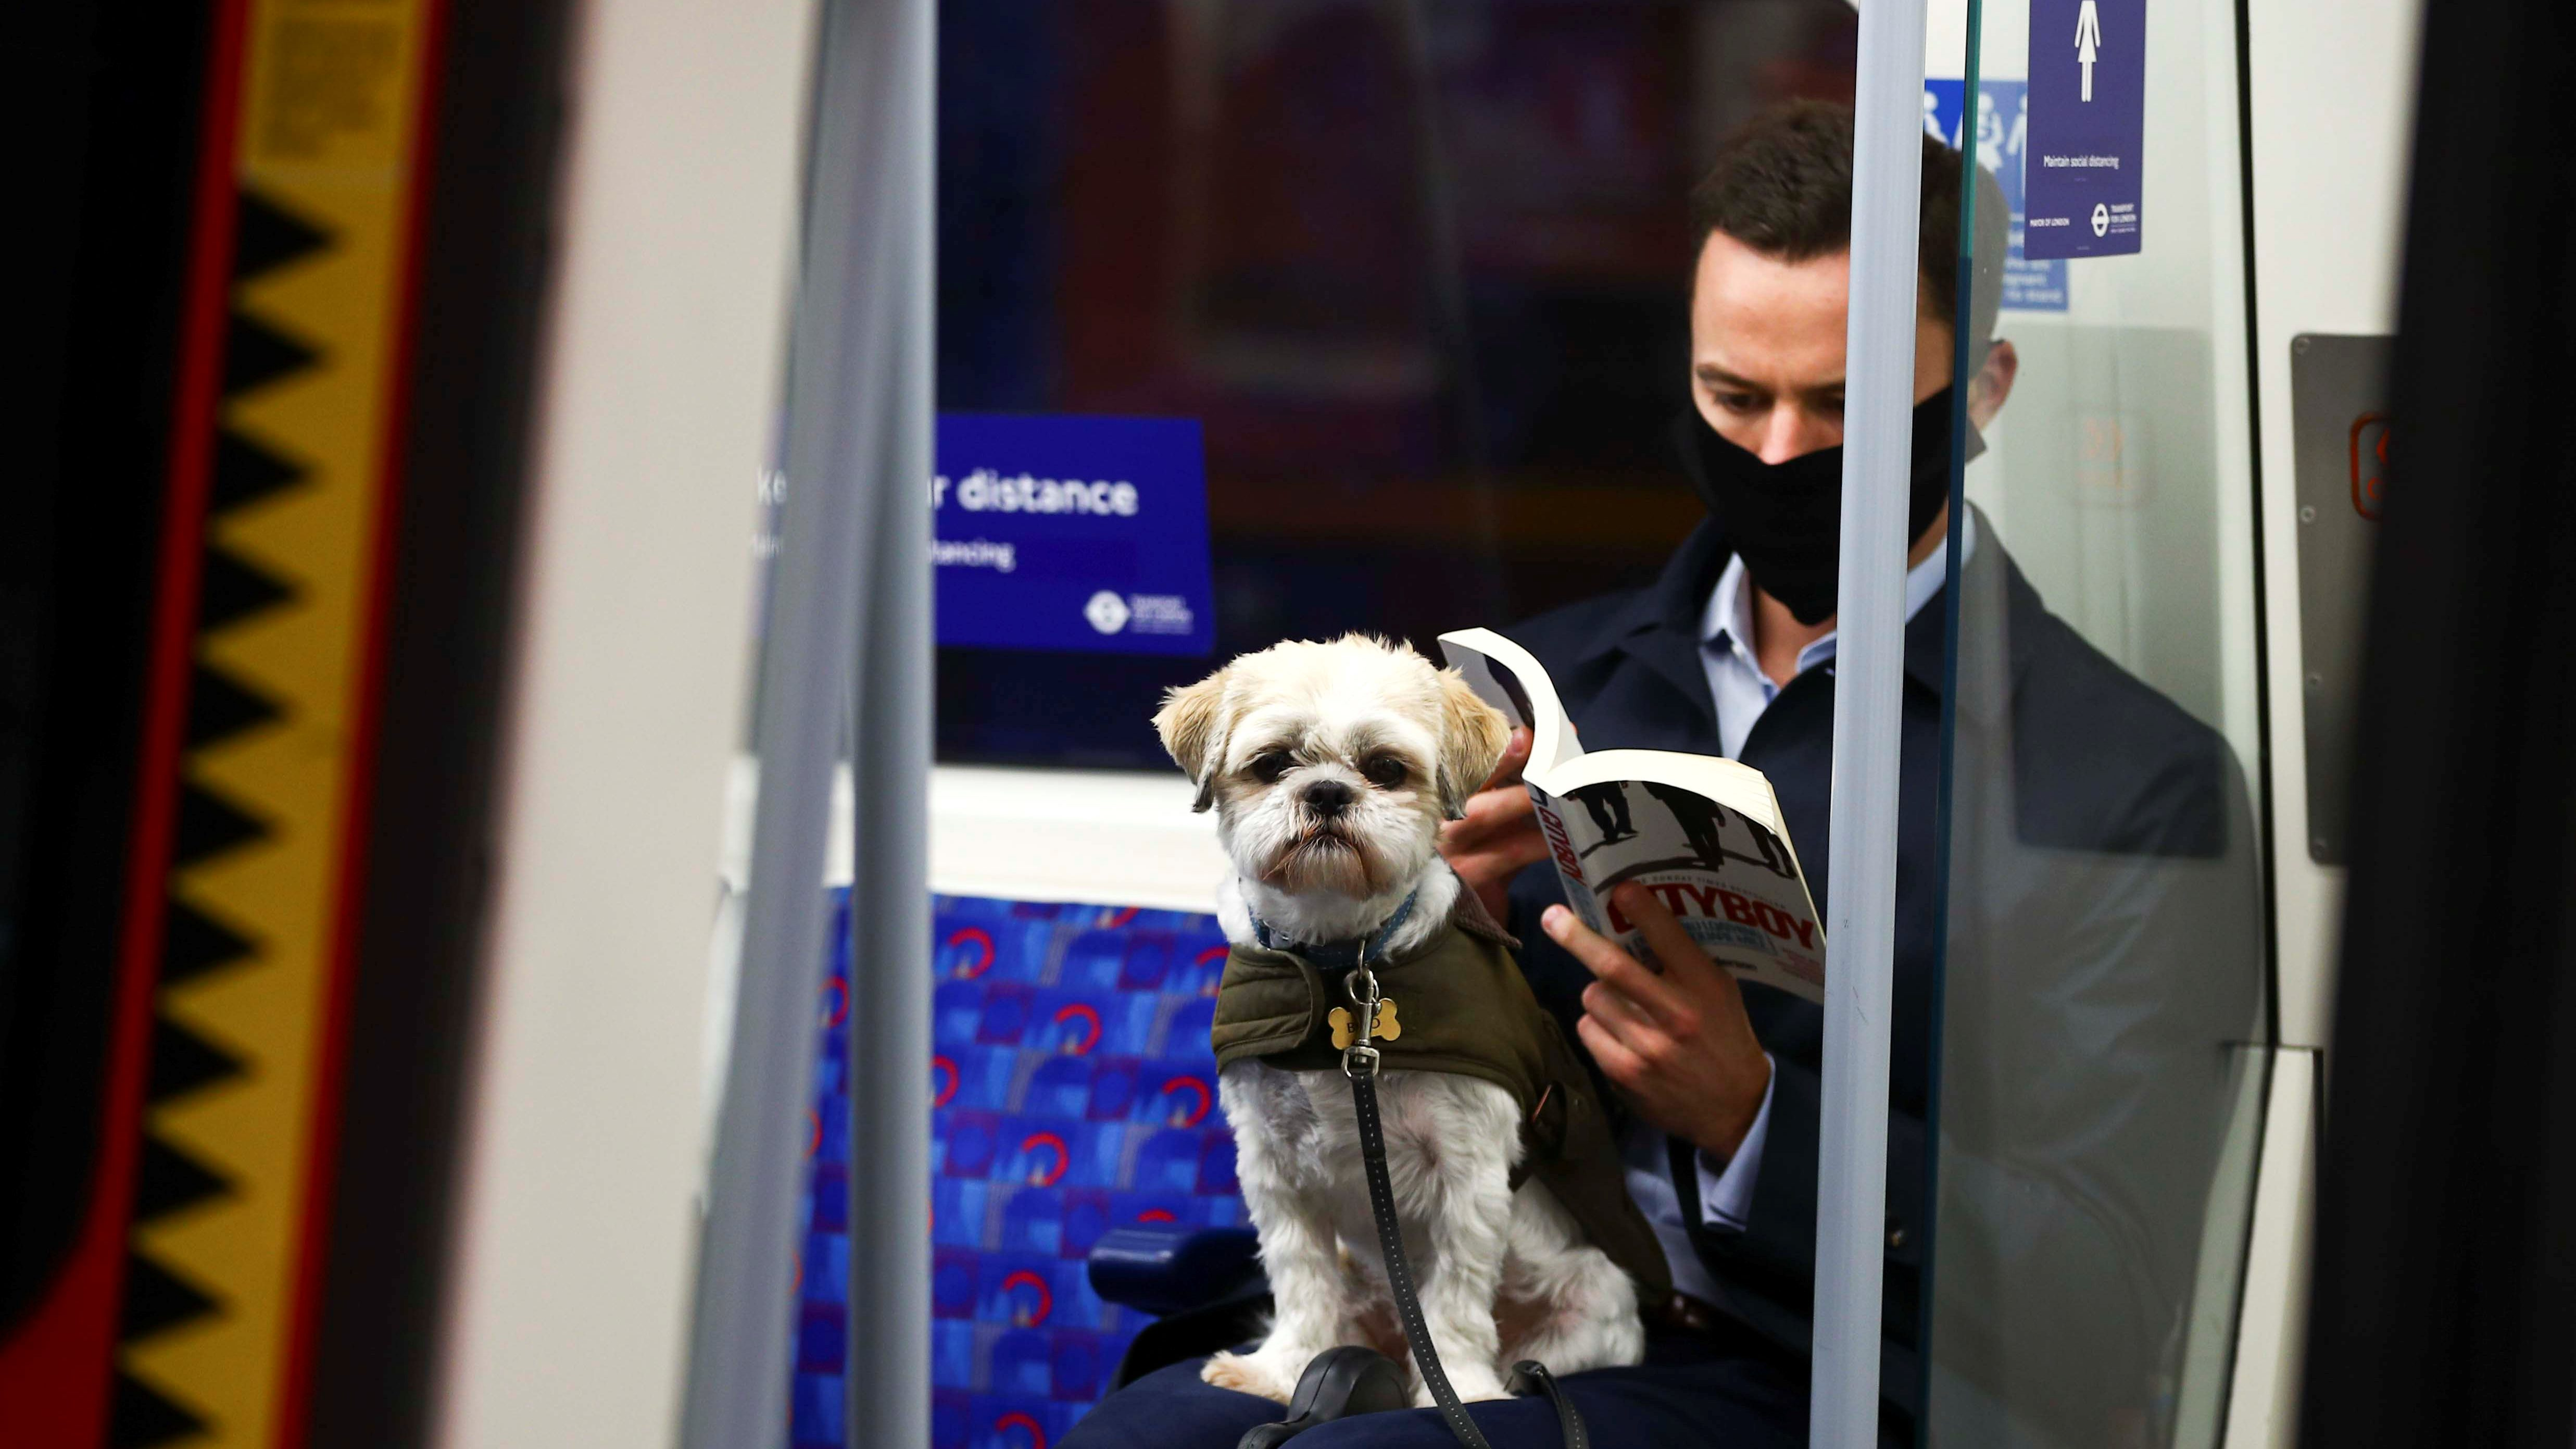 A dog sits on its owner's lap on the London tube